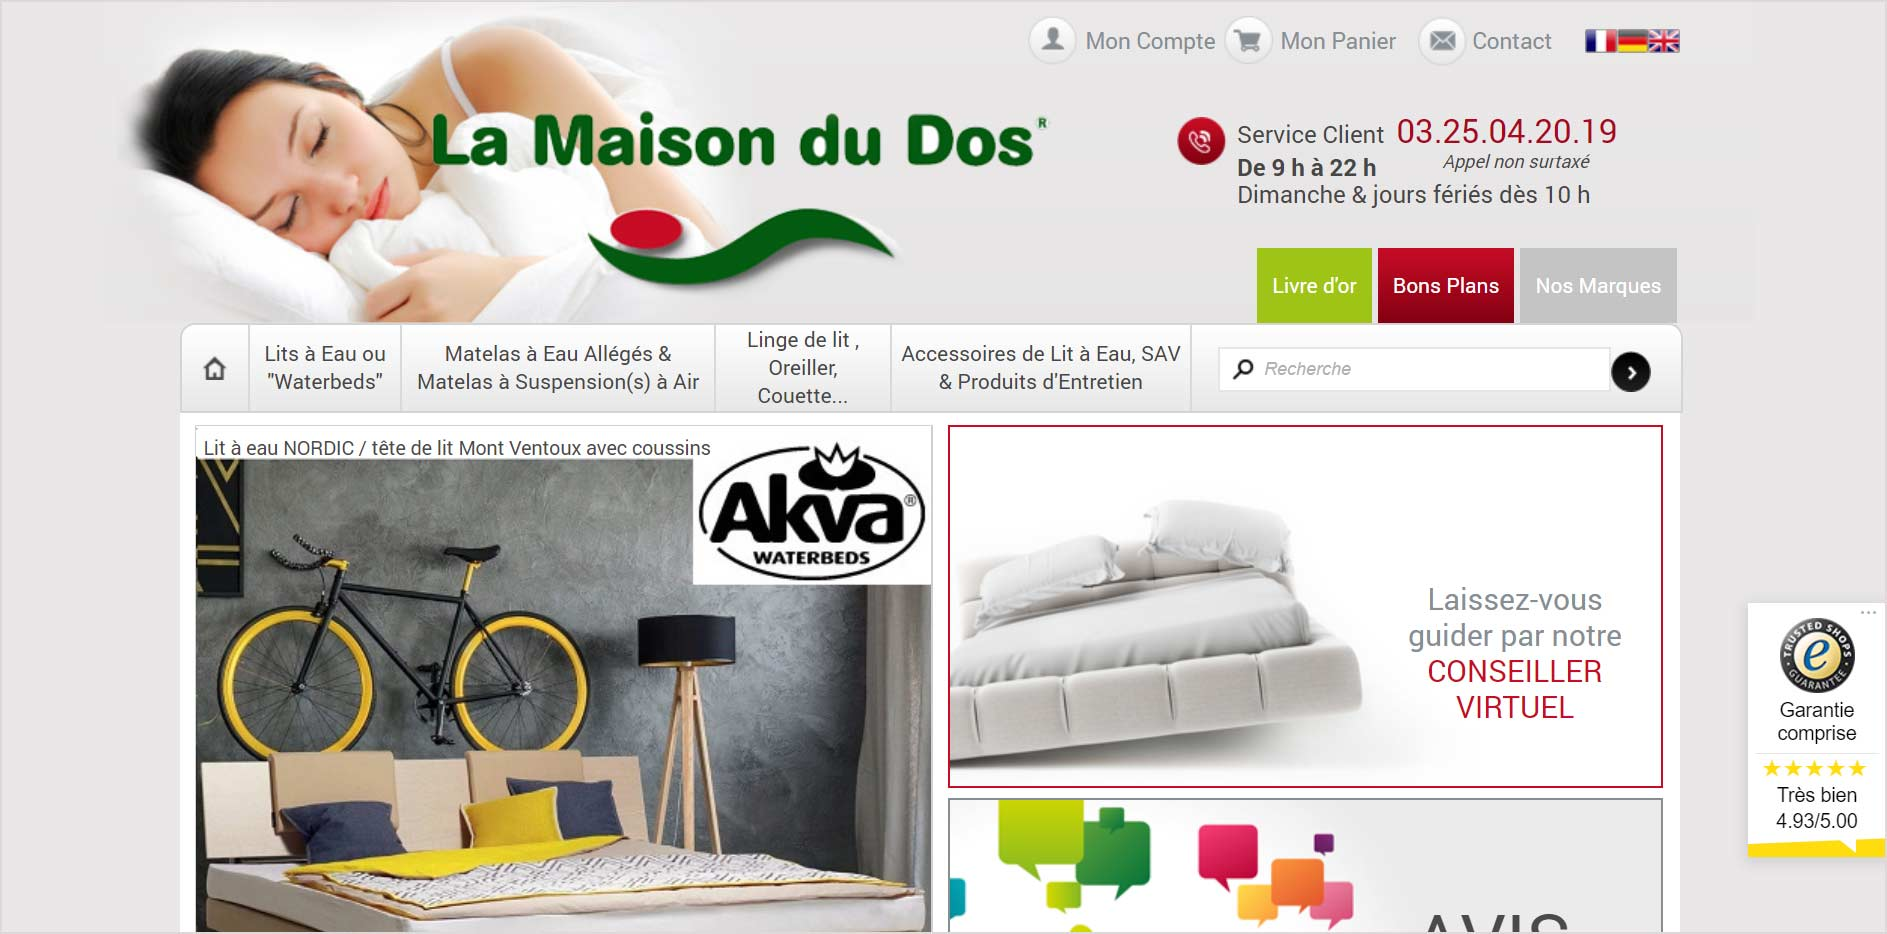 La Maison du Dos : Boutique en ligne par Shop Application ayant active le module Trusted Shops pour gerer ses avis clients